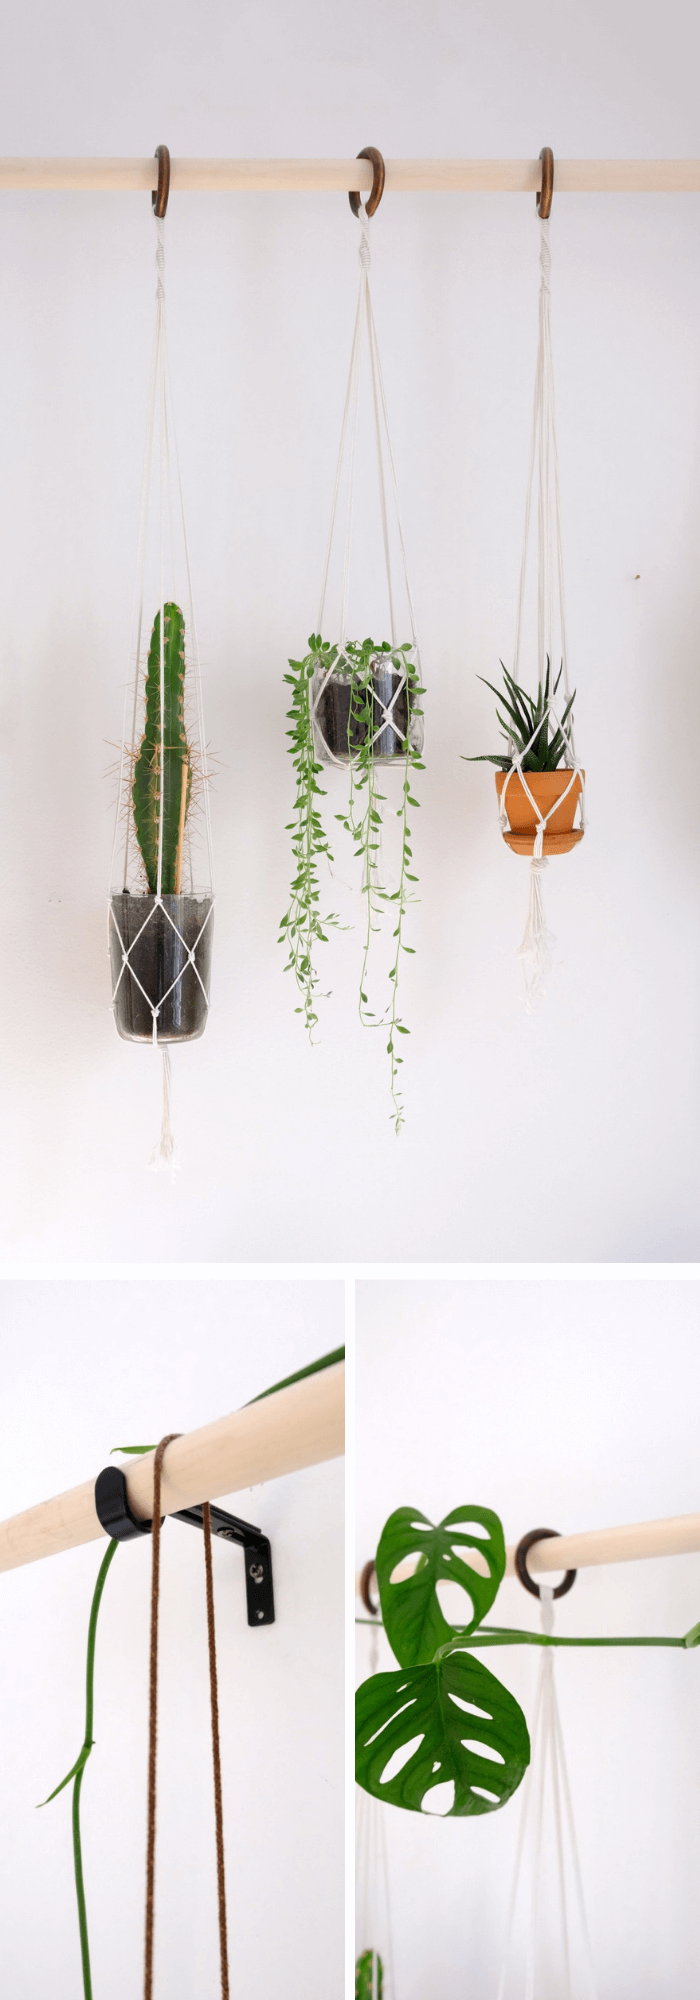 DIY Plant Wall Made from a Broomstick